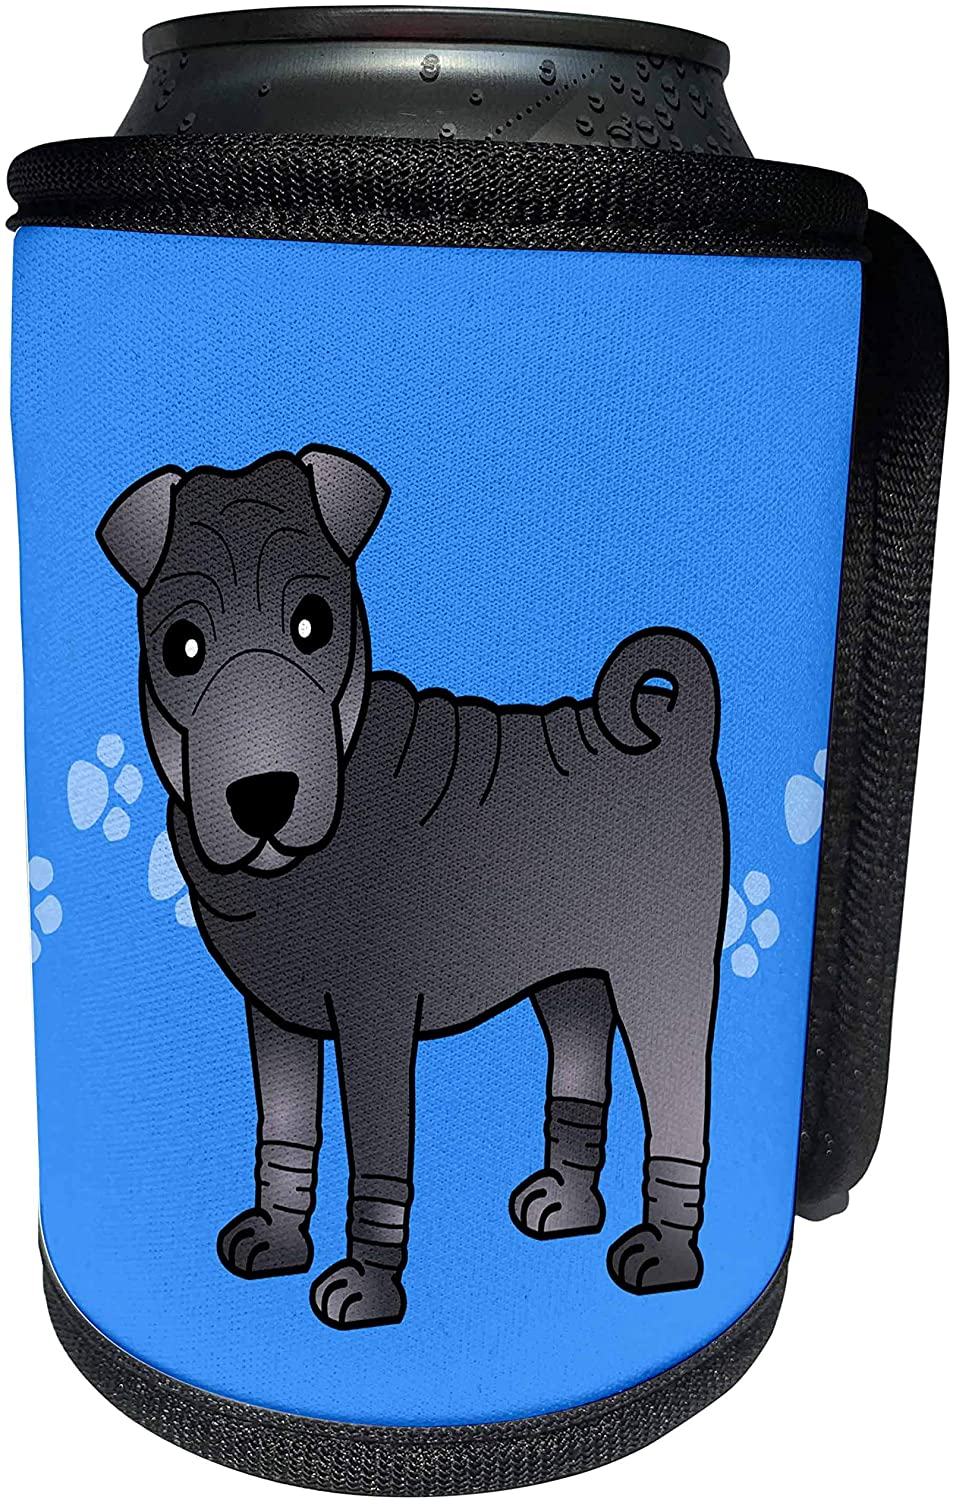 3dRose Janna Salak Designs Dogs - Cute Chinese Shar Pei Blue Coat - Blue Paw Prints - Can Cooler Bottle Wrap (cc_47617_1)